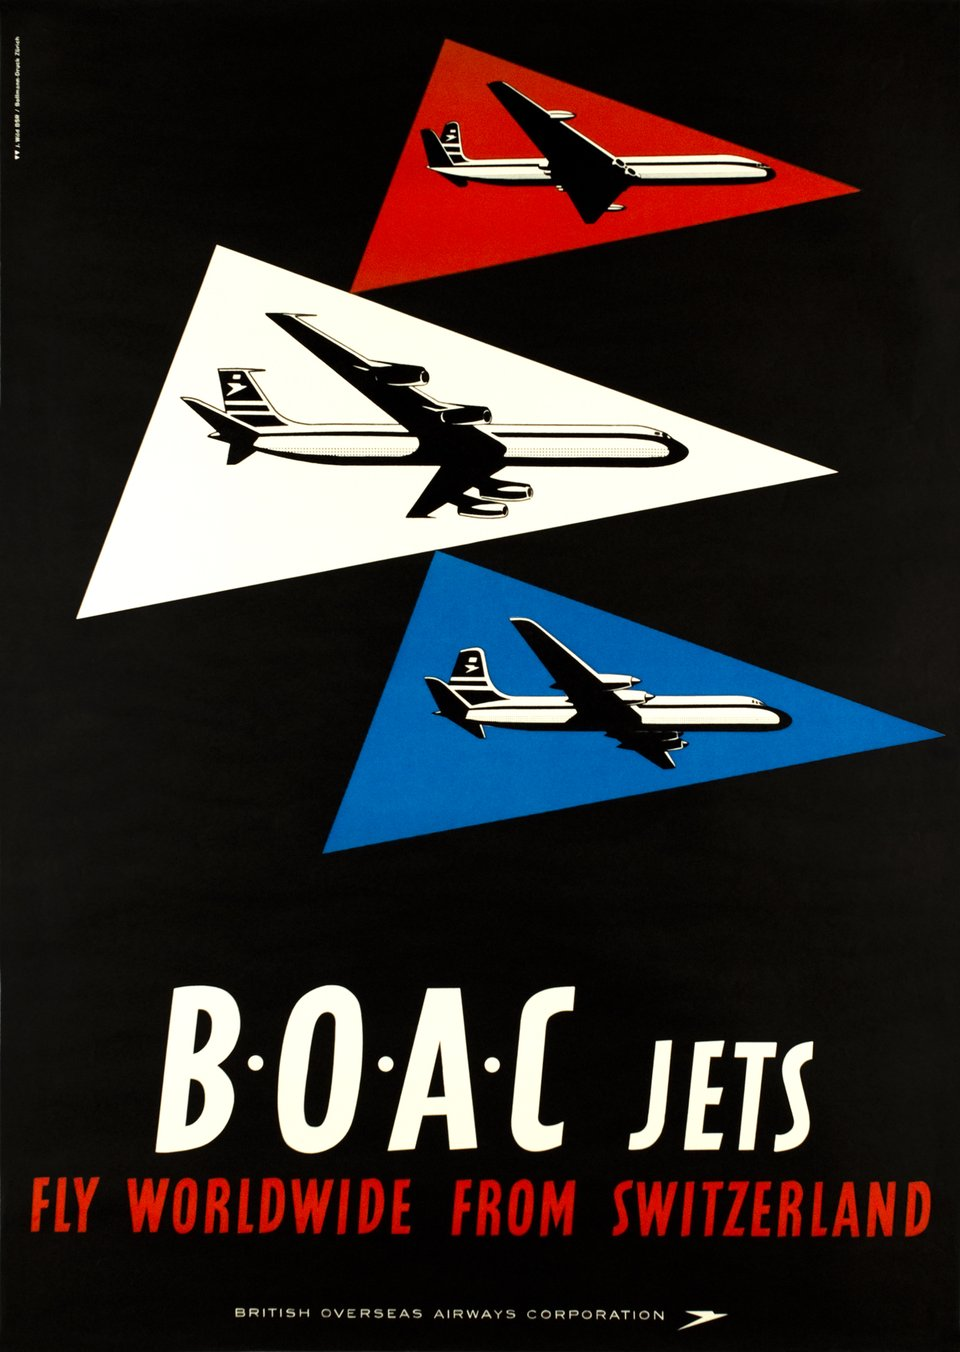 B.O.A.C. Jets fly worldwide from Switzerland – Affiche ancienne – J WILD – 1955